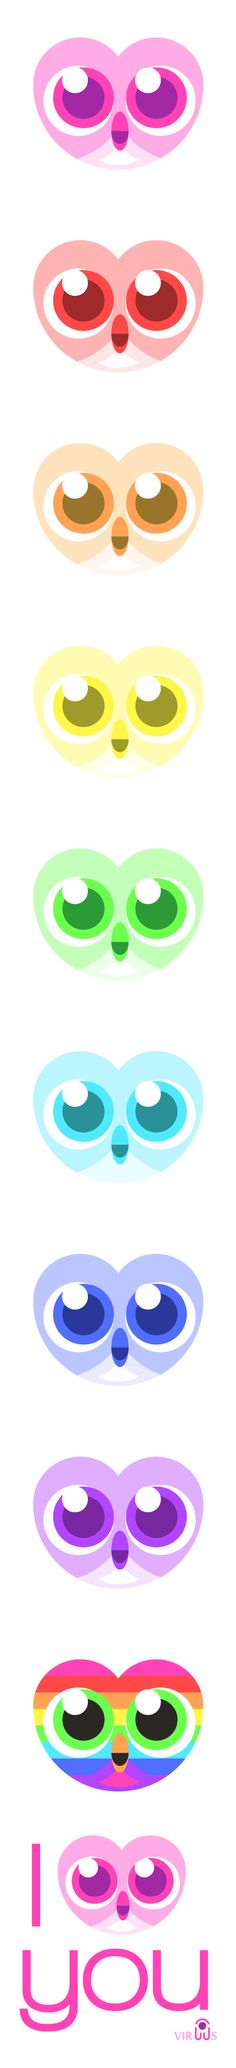 I owl you , a nice way to say i love you for valentine's day with a cute valentine owl rainbow